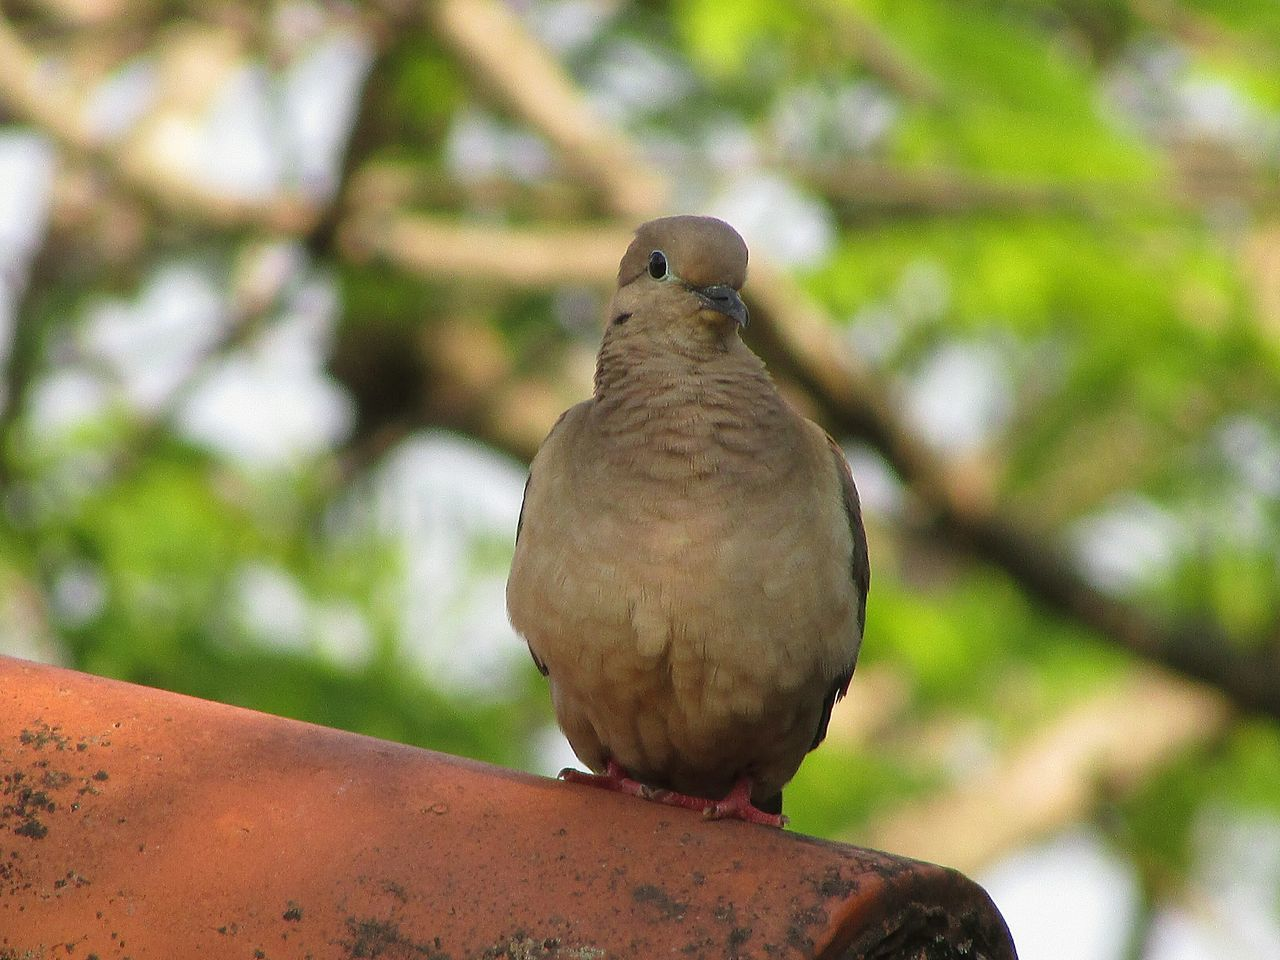 bird, one animal, animal themes, focus on foreground, perching, animals in the wild, mourning dove, animal wildlife, day, outdoors, no people, nature, close-up, retaining wall, sky